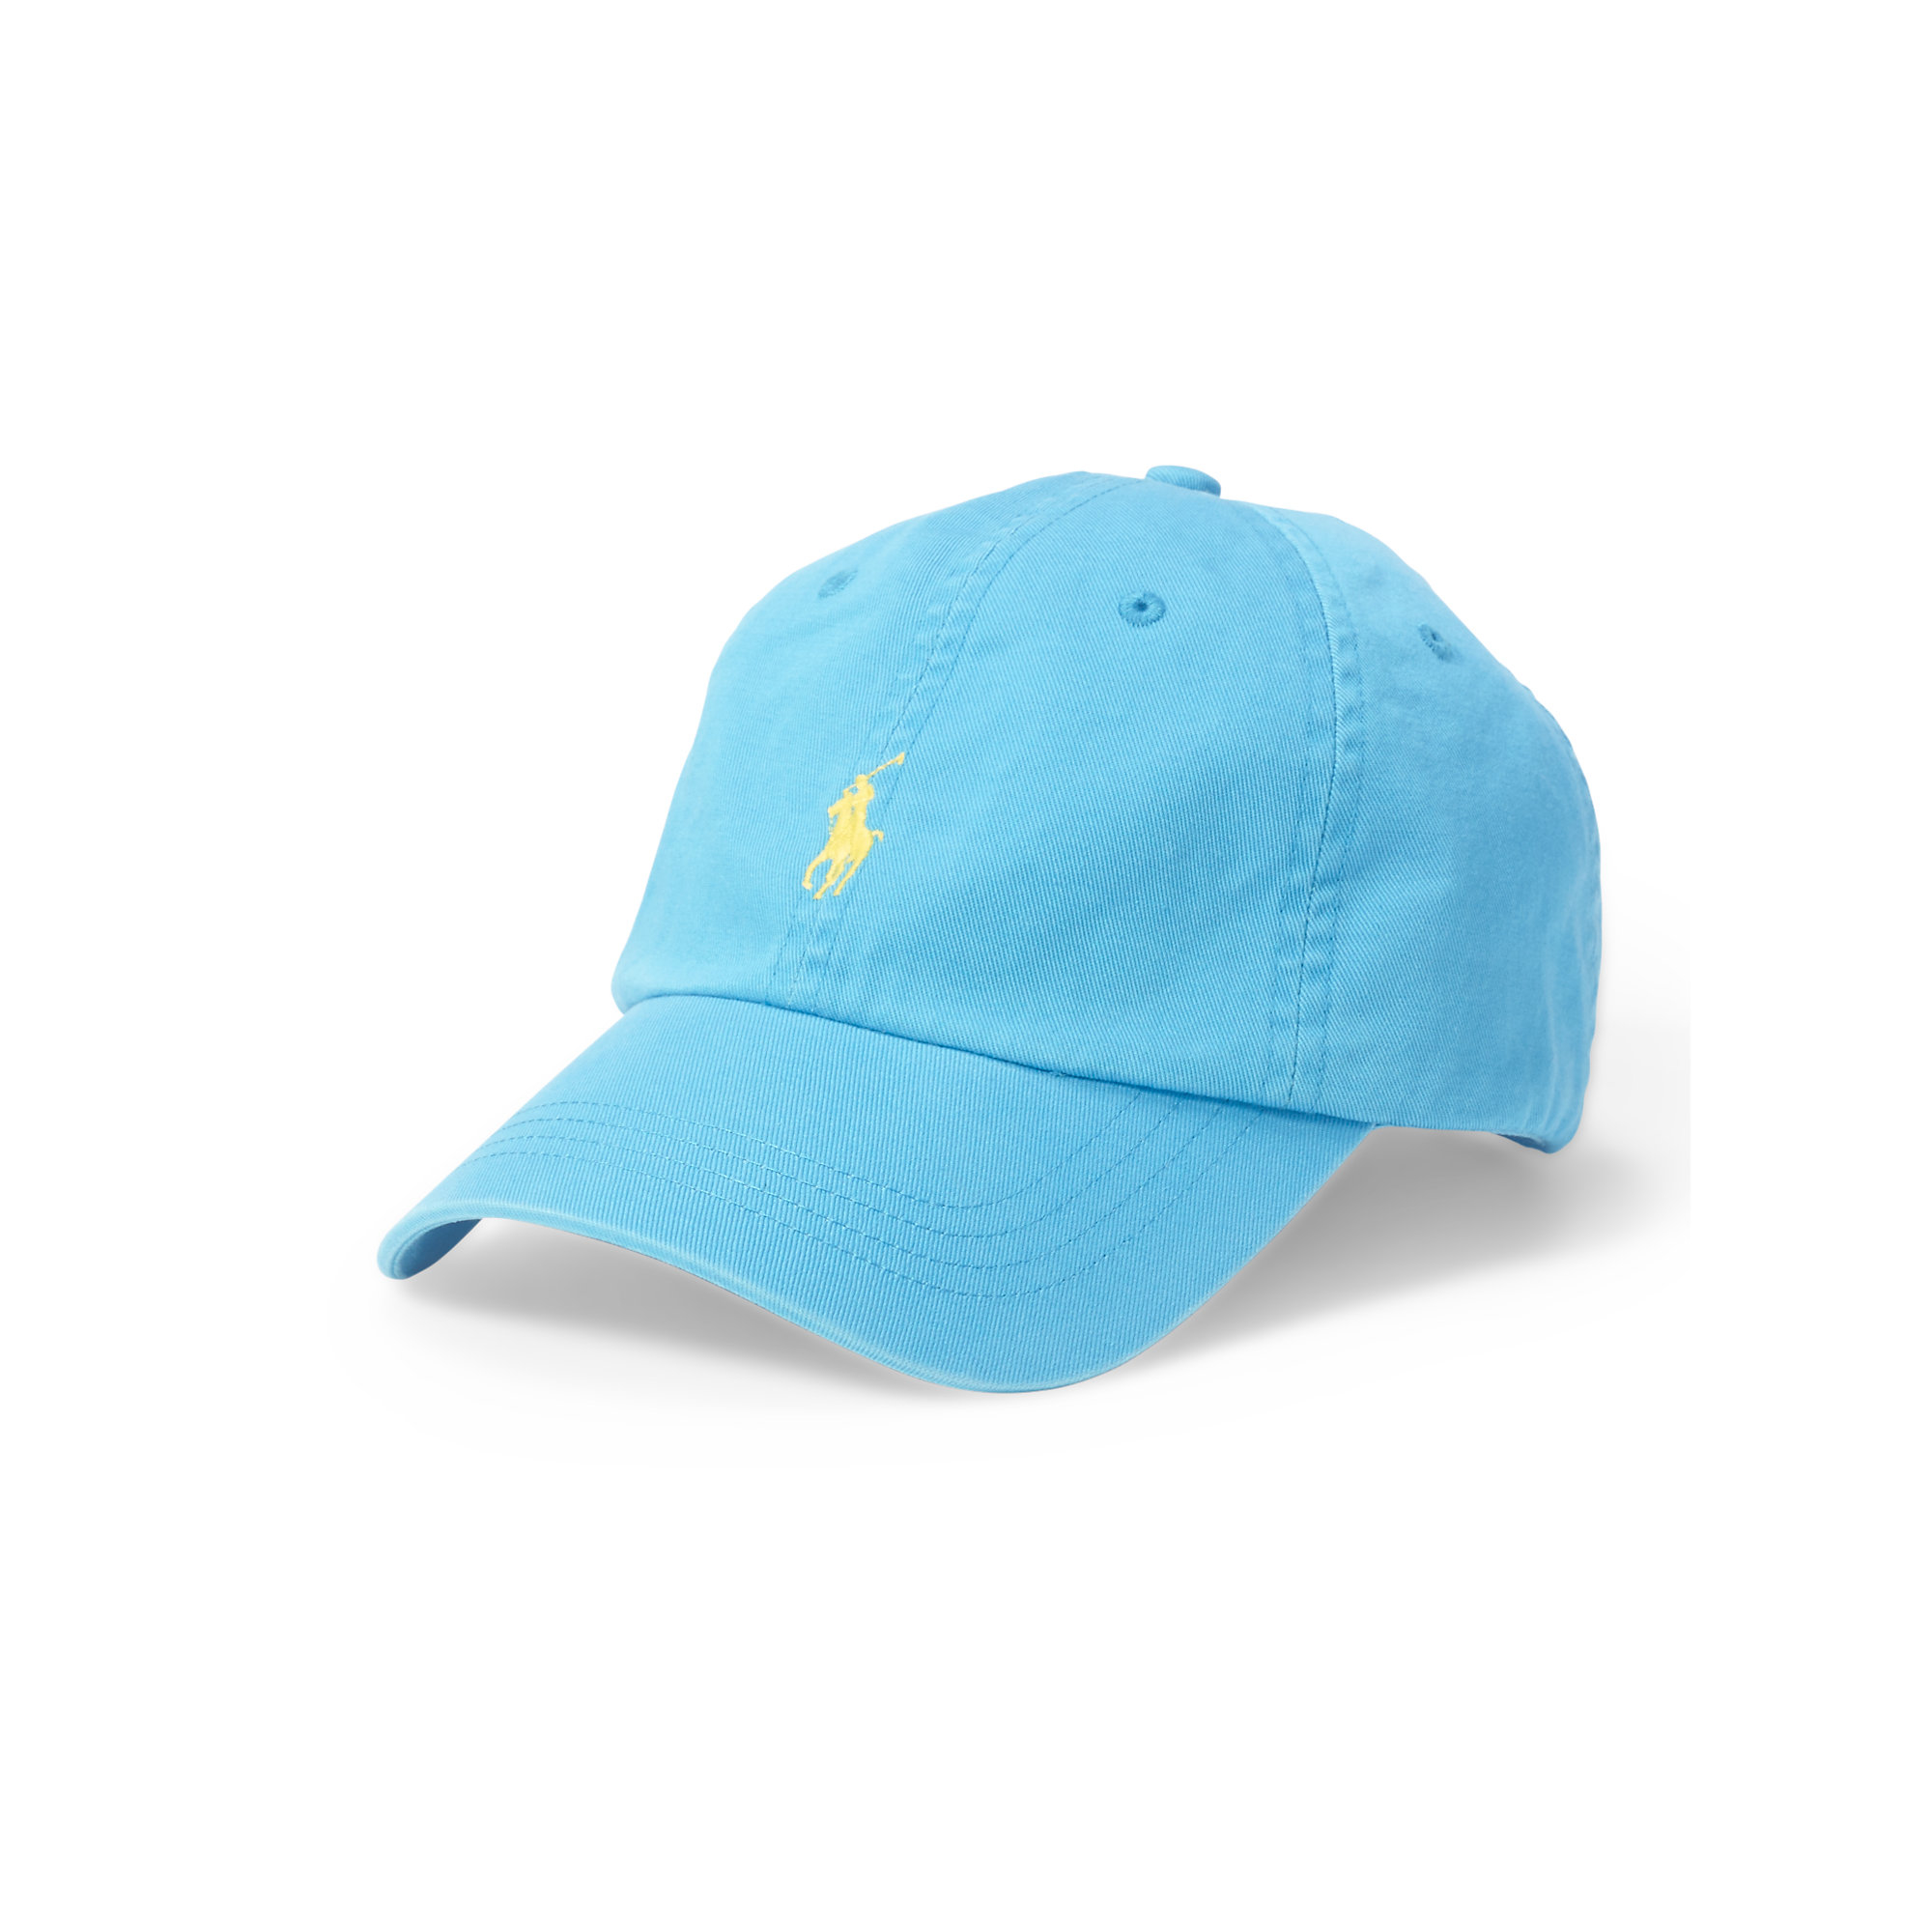 6ccb887e786430 ... get lyst polo ralph lauren cotton chino baseball cap in blue for men  121ed 2c591